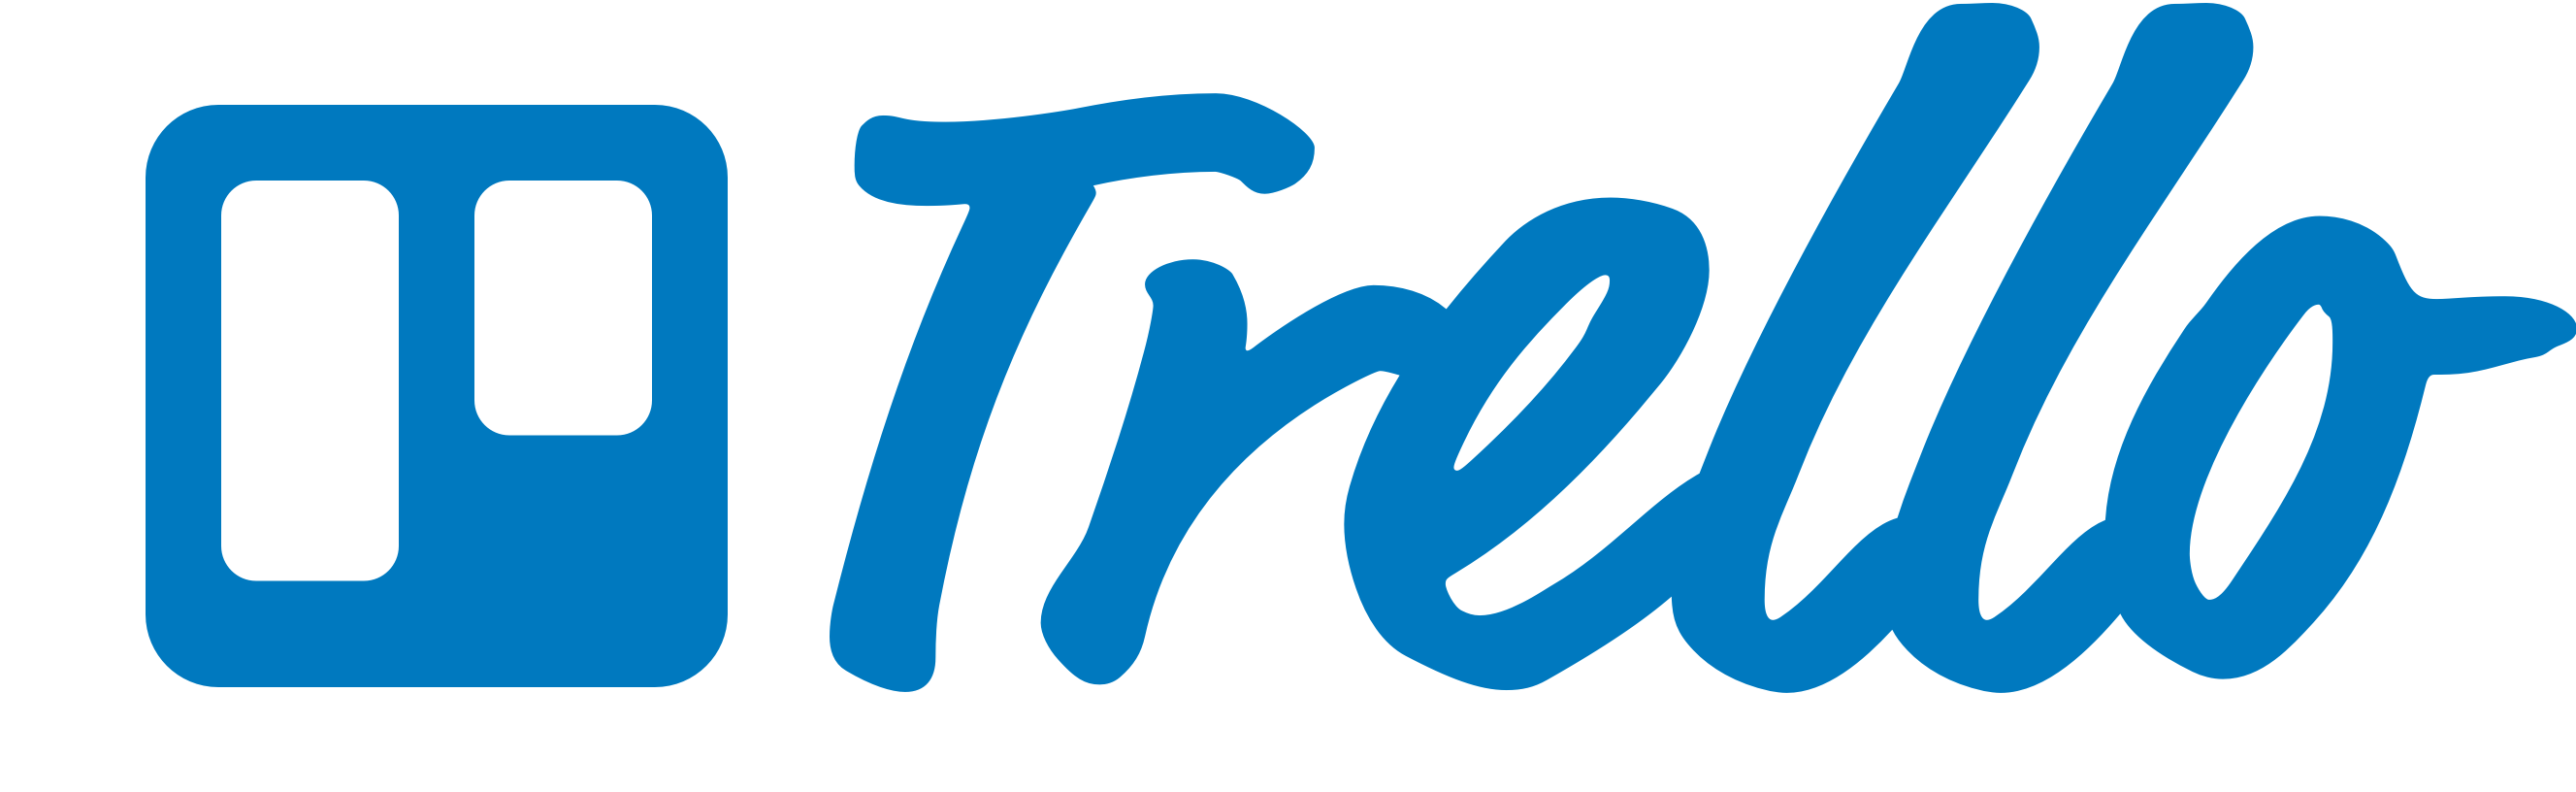 Trello (powered by Automate.io)